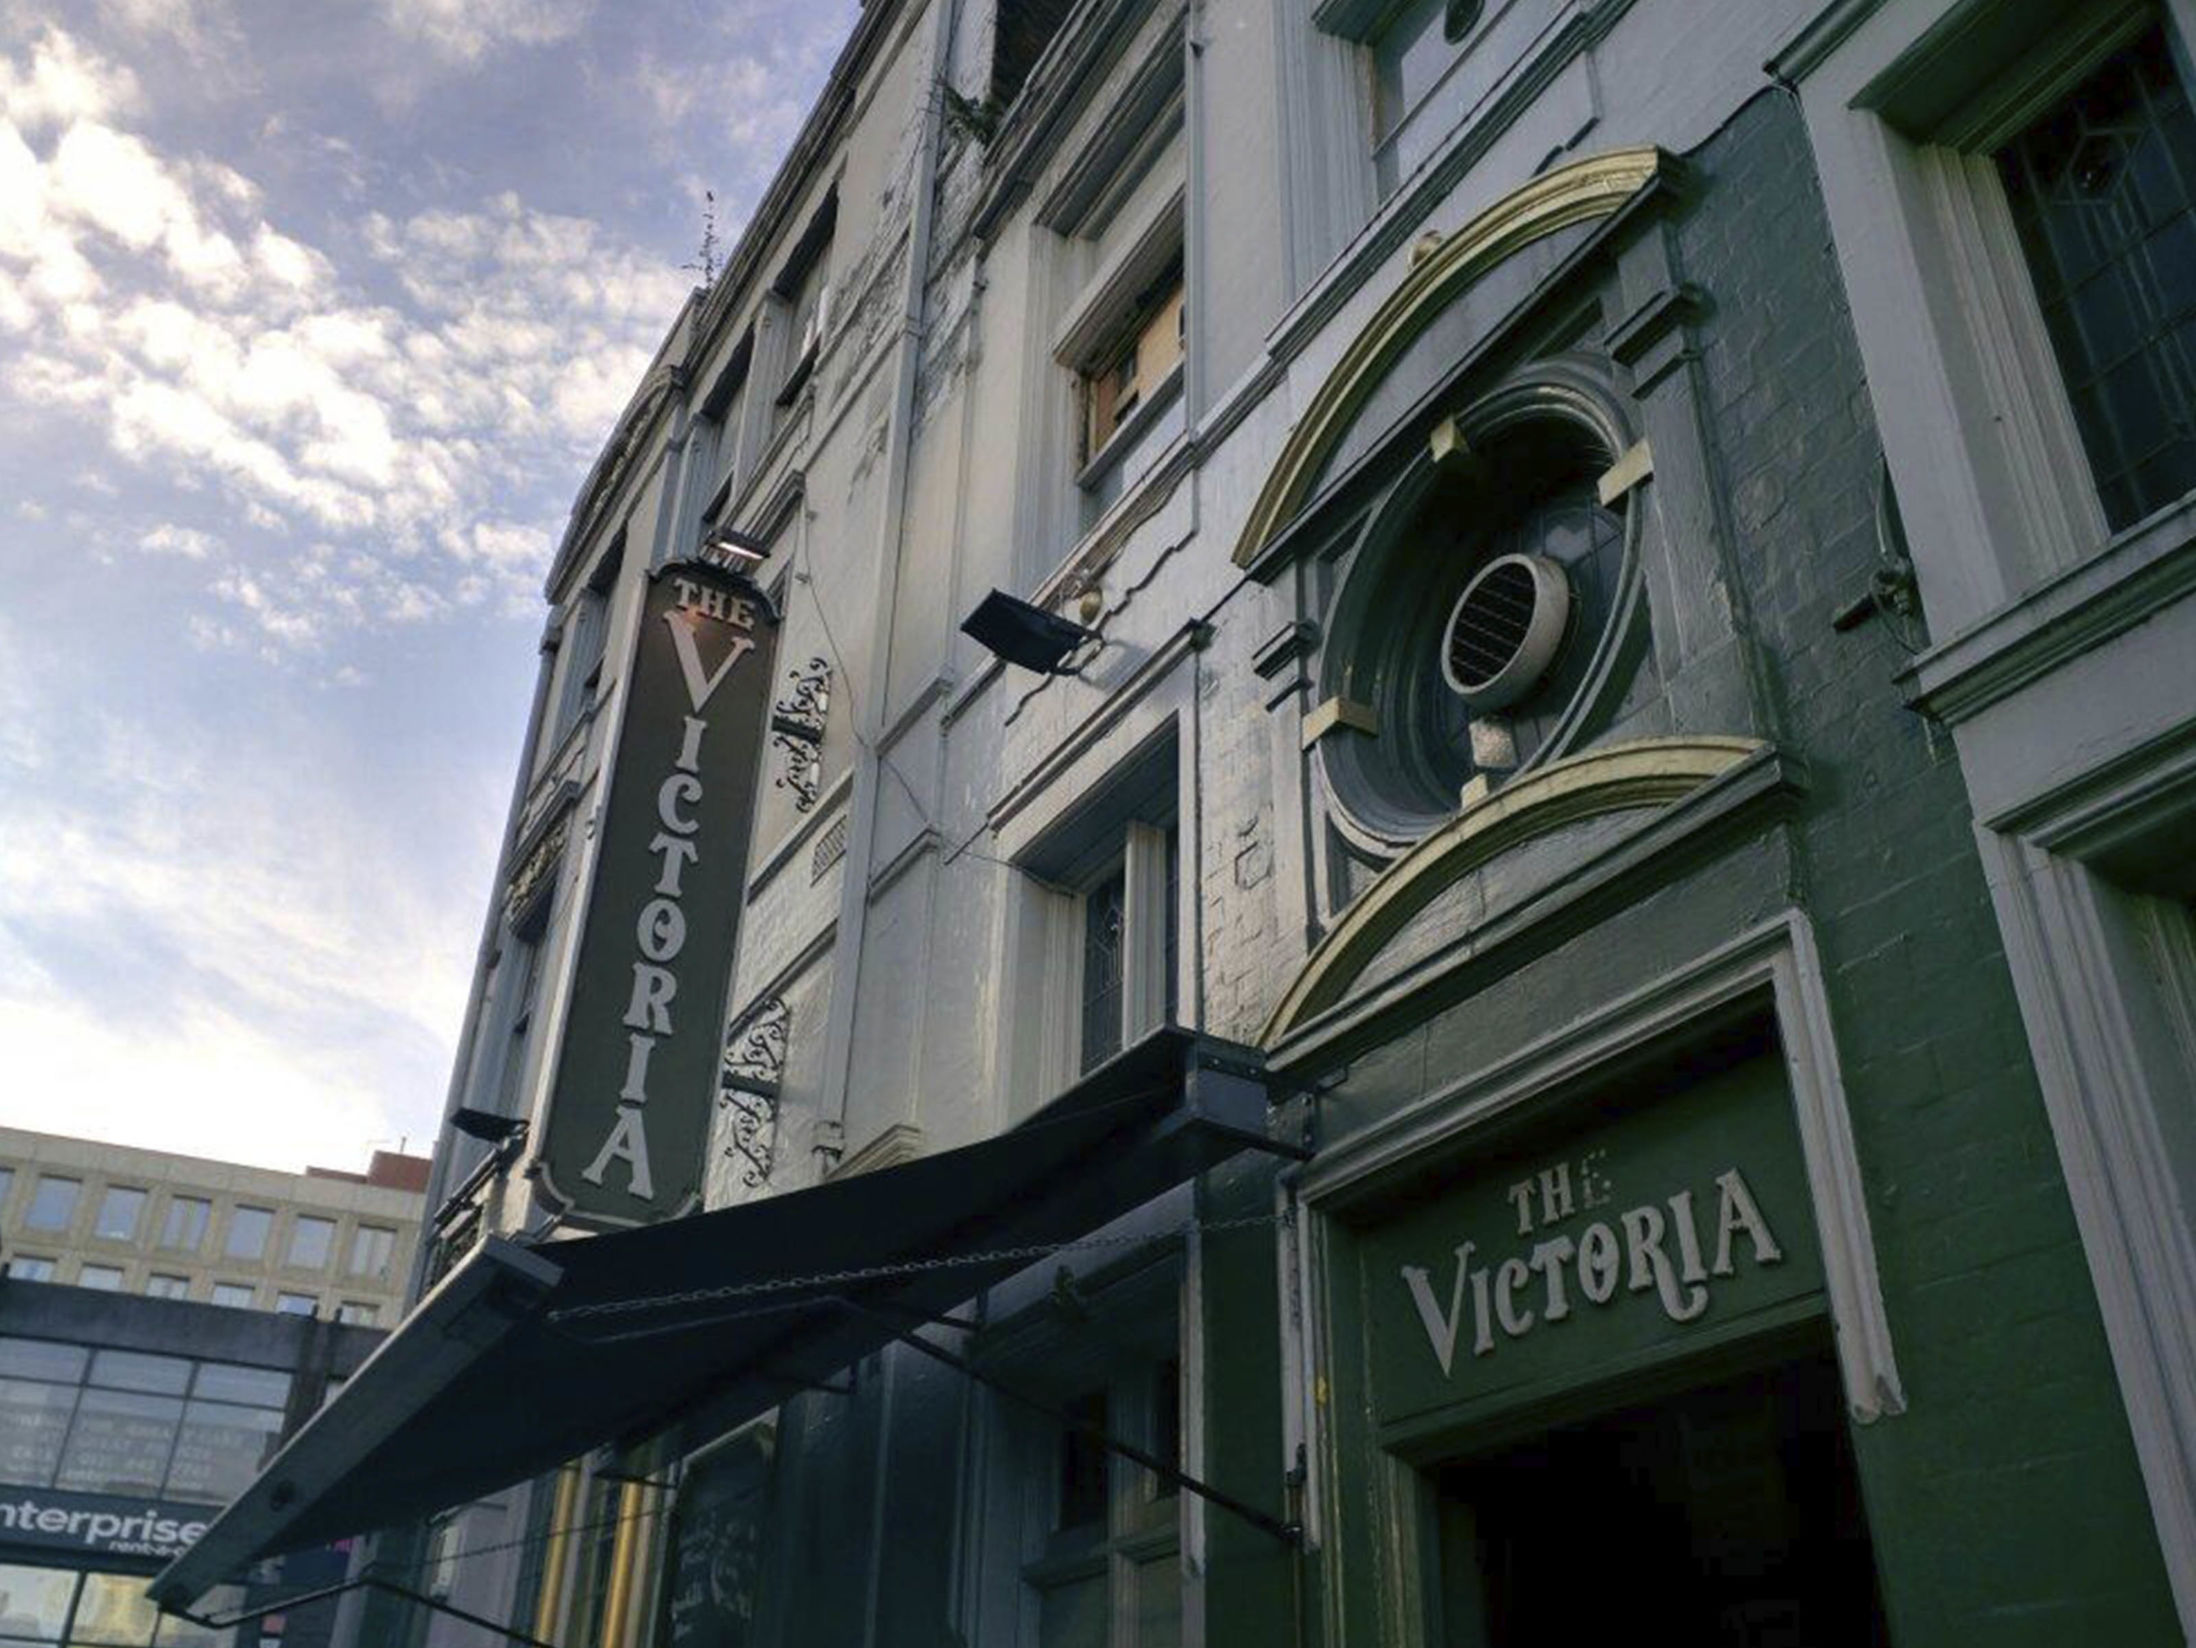 Best Bars in Birmingham - The Victoria